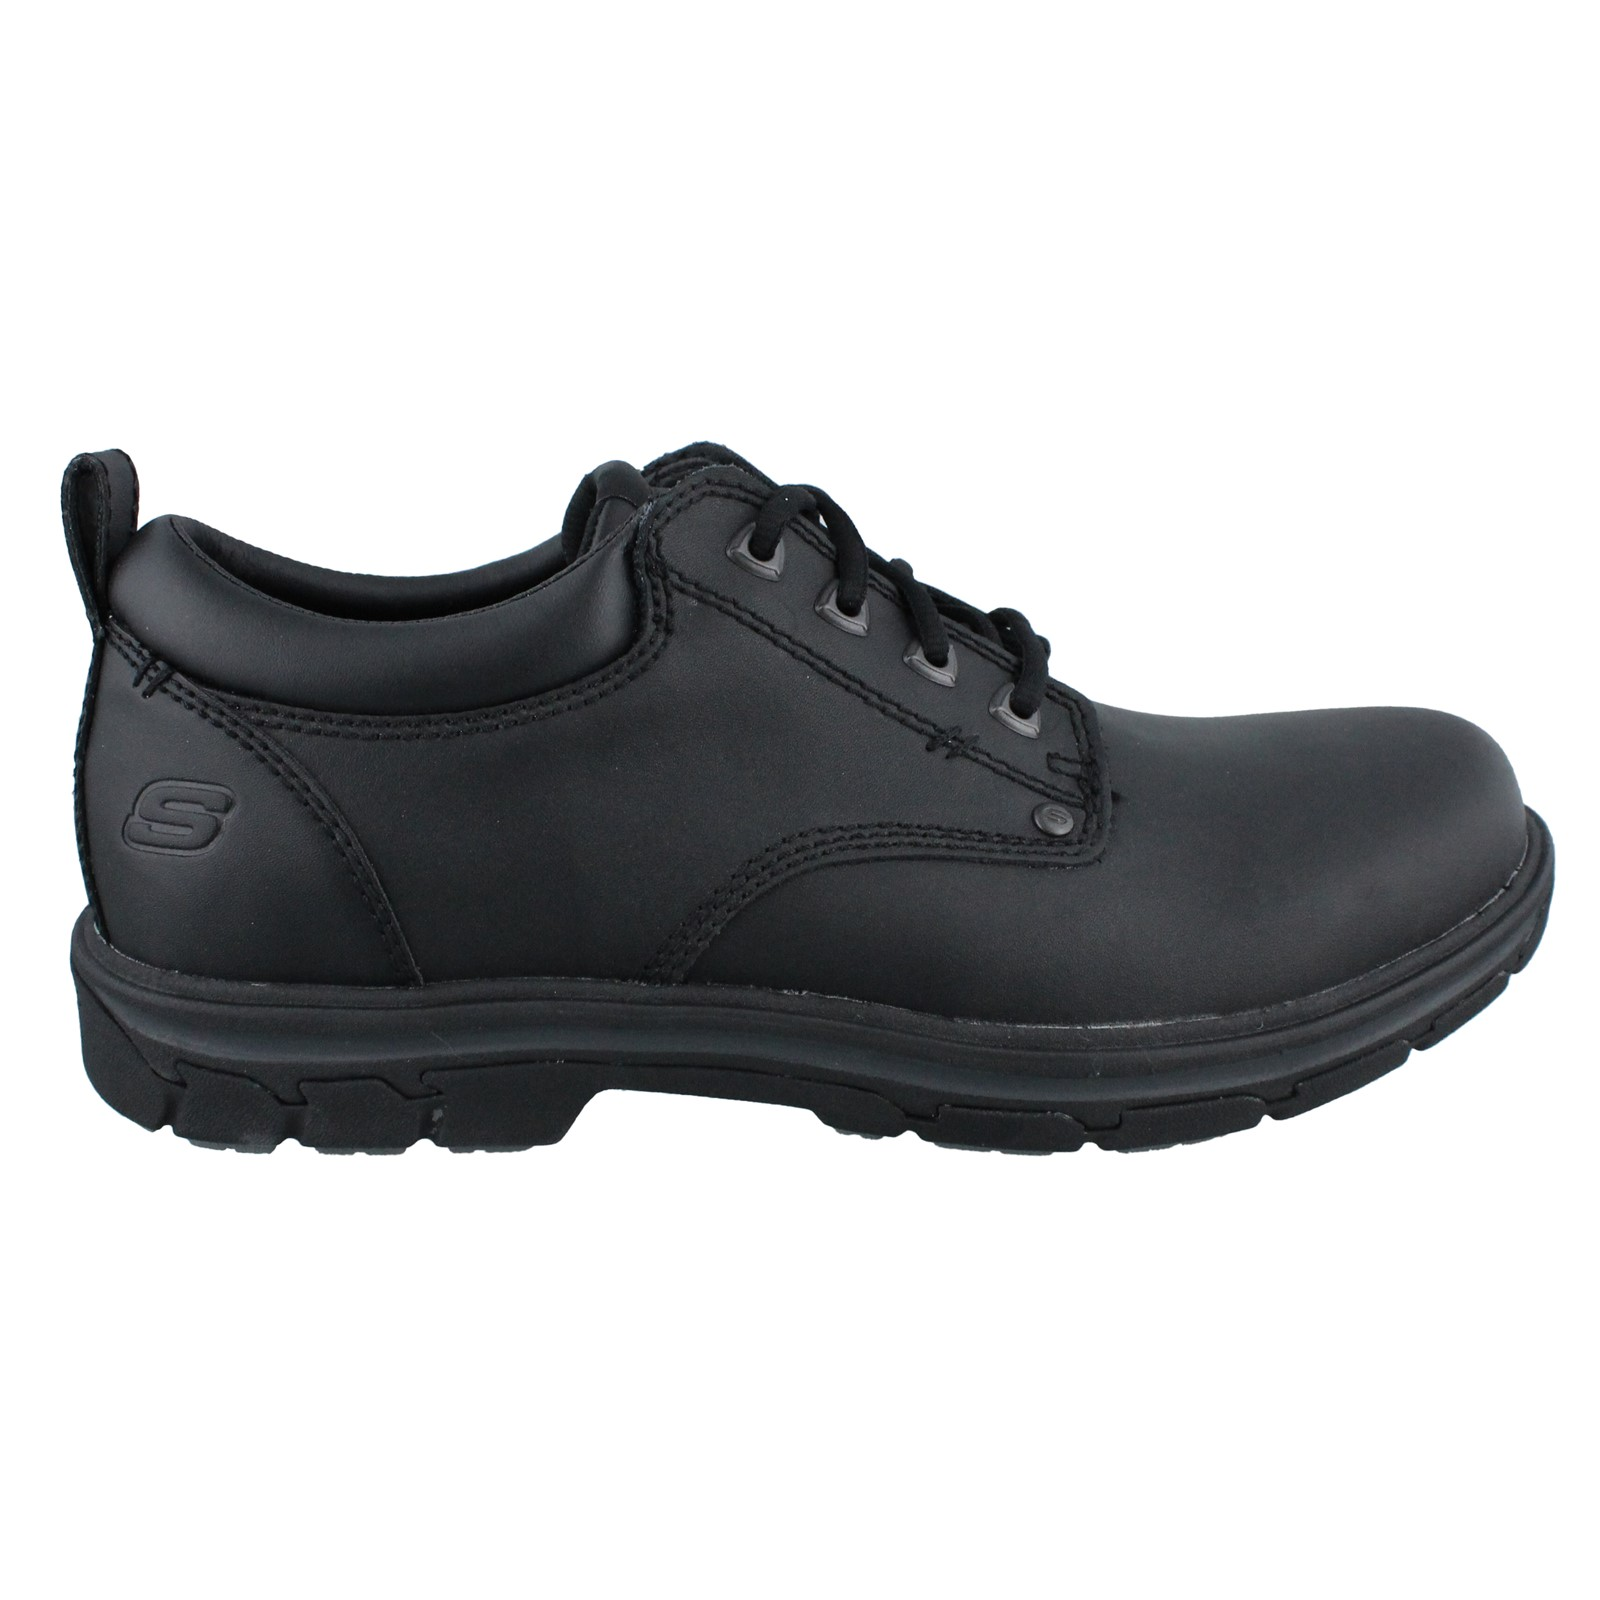 Men's Skechers, Segment Rilar Oxford